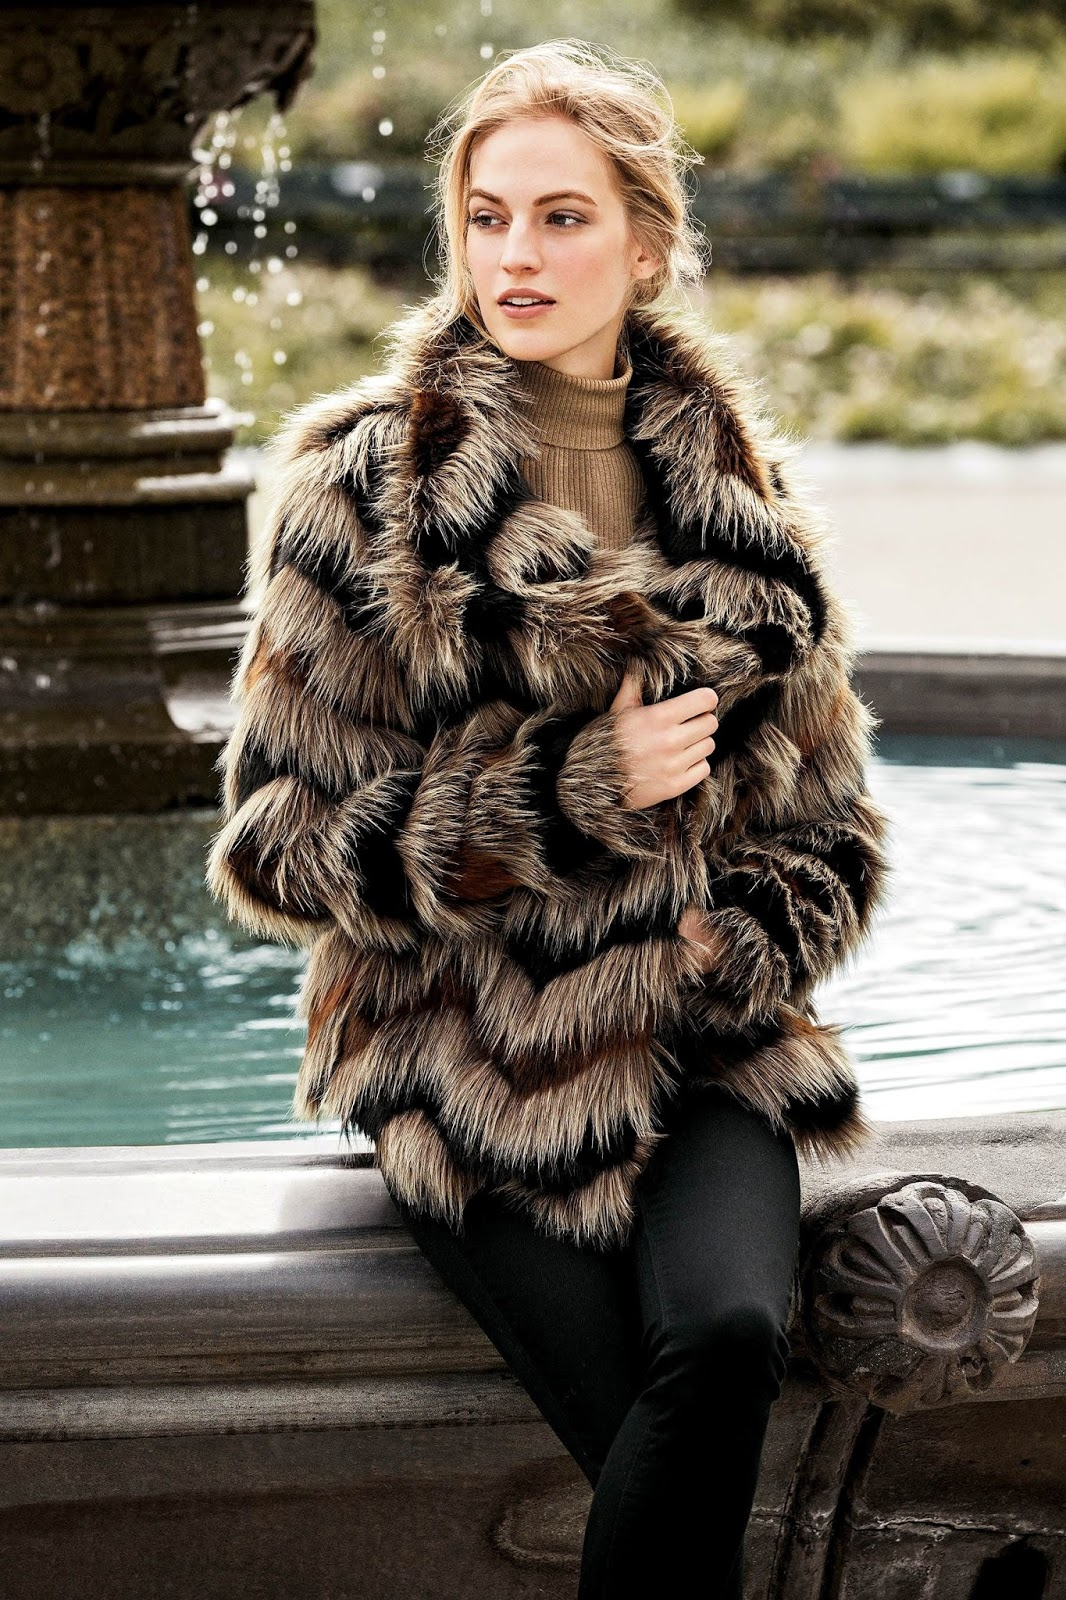 Faux Fur Jackets From Next - Chichi Writes